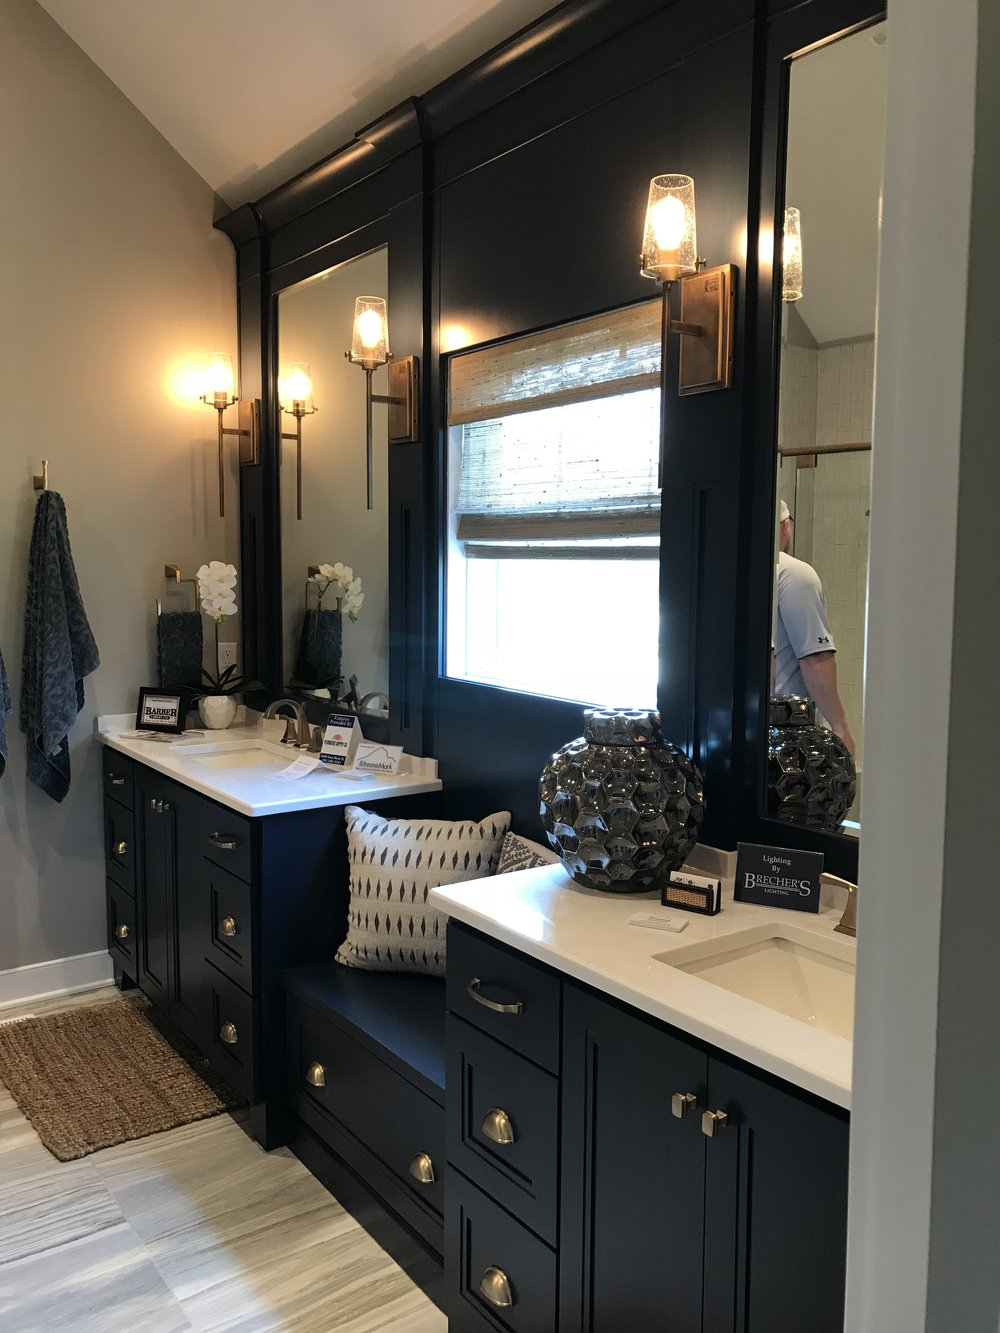 Take A Look At This Bathroom We Are Currently Working On For A Homeowner  Here In Lexington: Interior Design By Dovetail